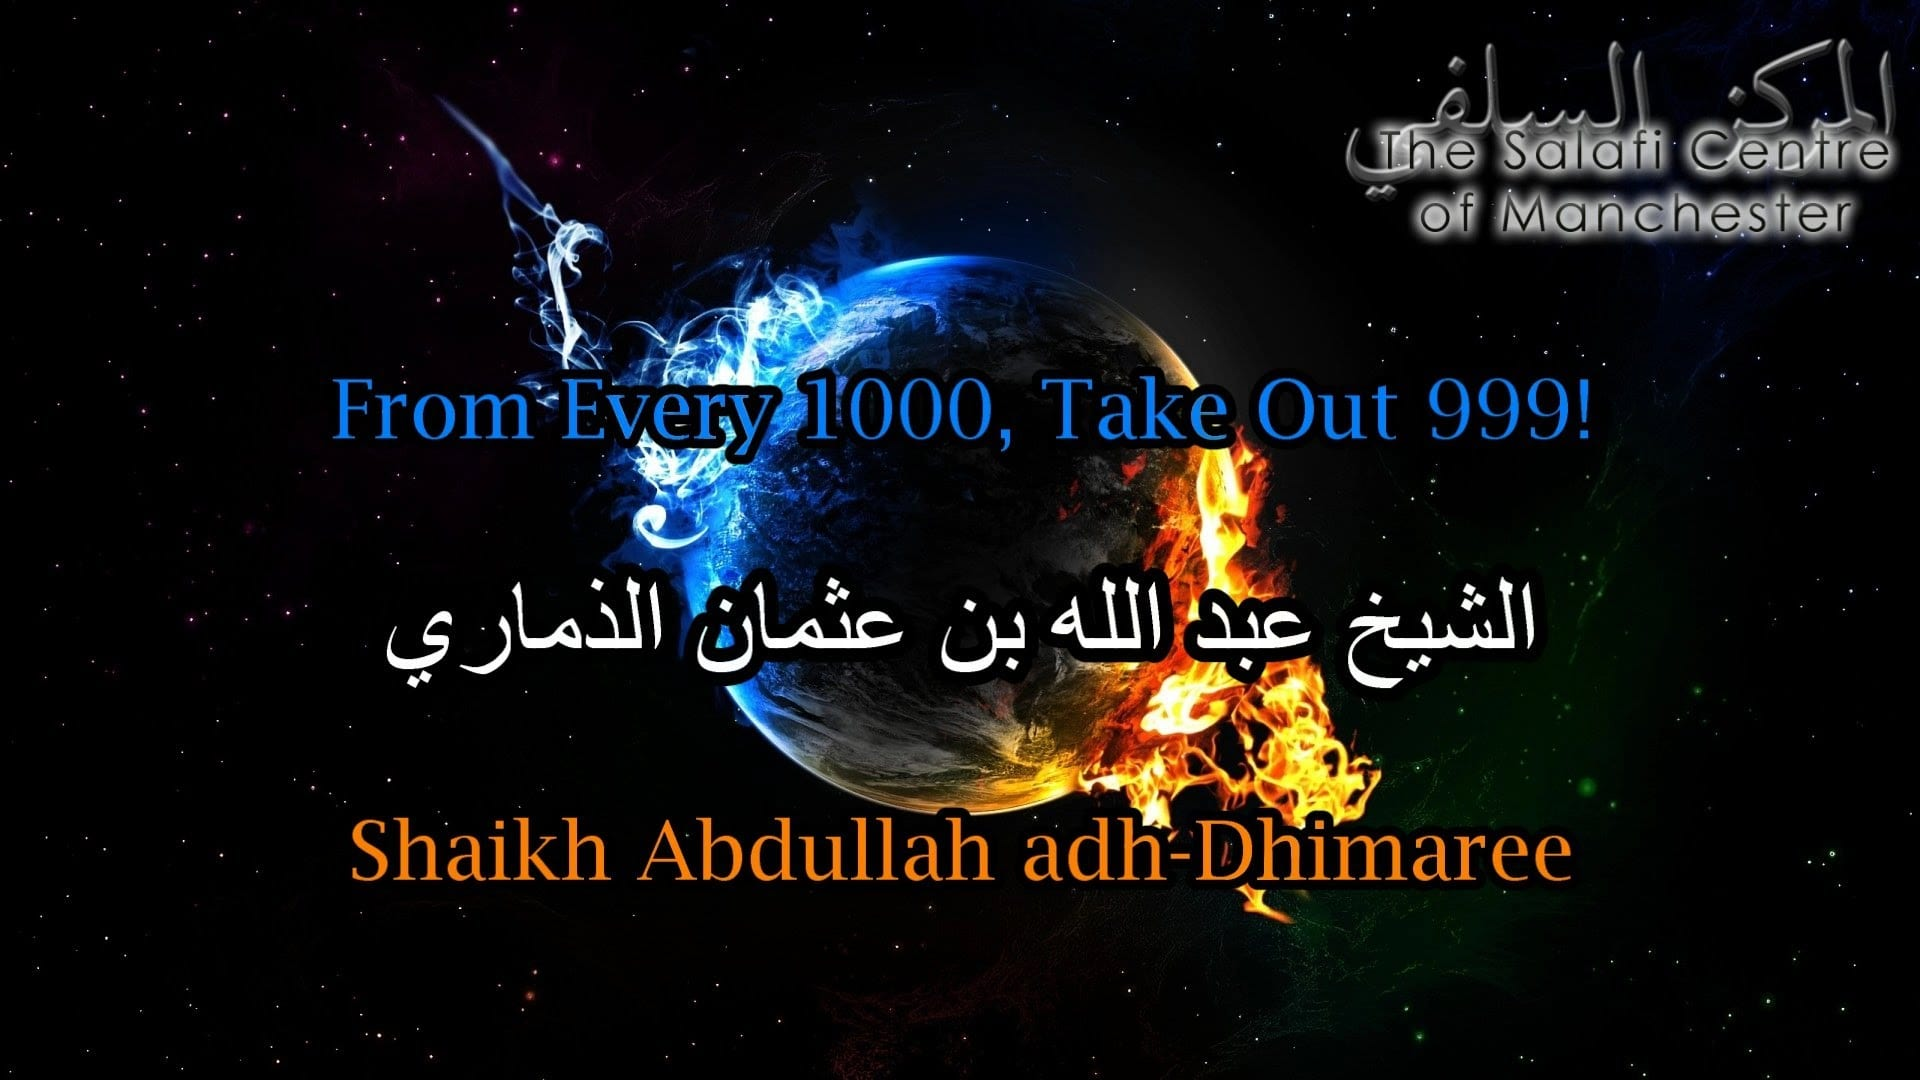 """From Every 1000, Take Out 999"" 